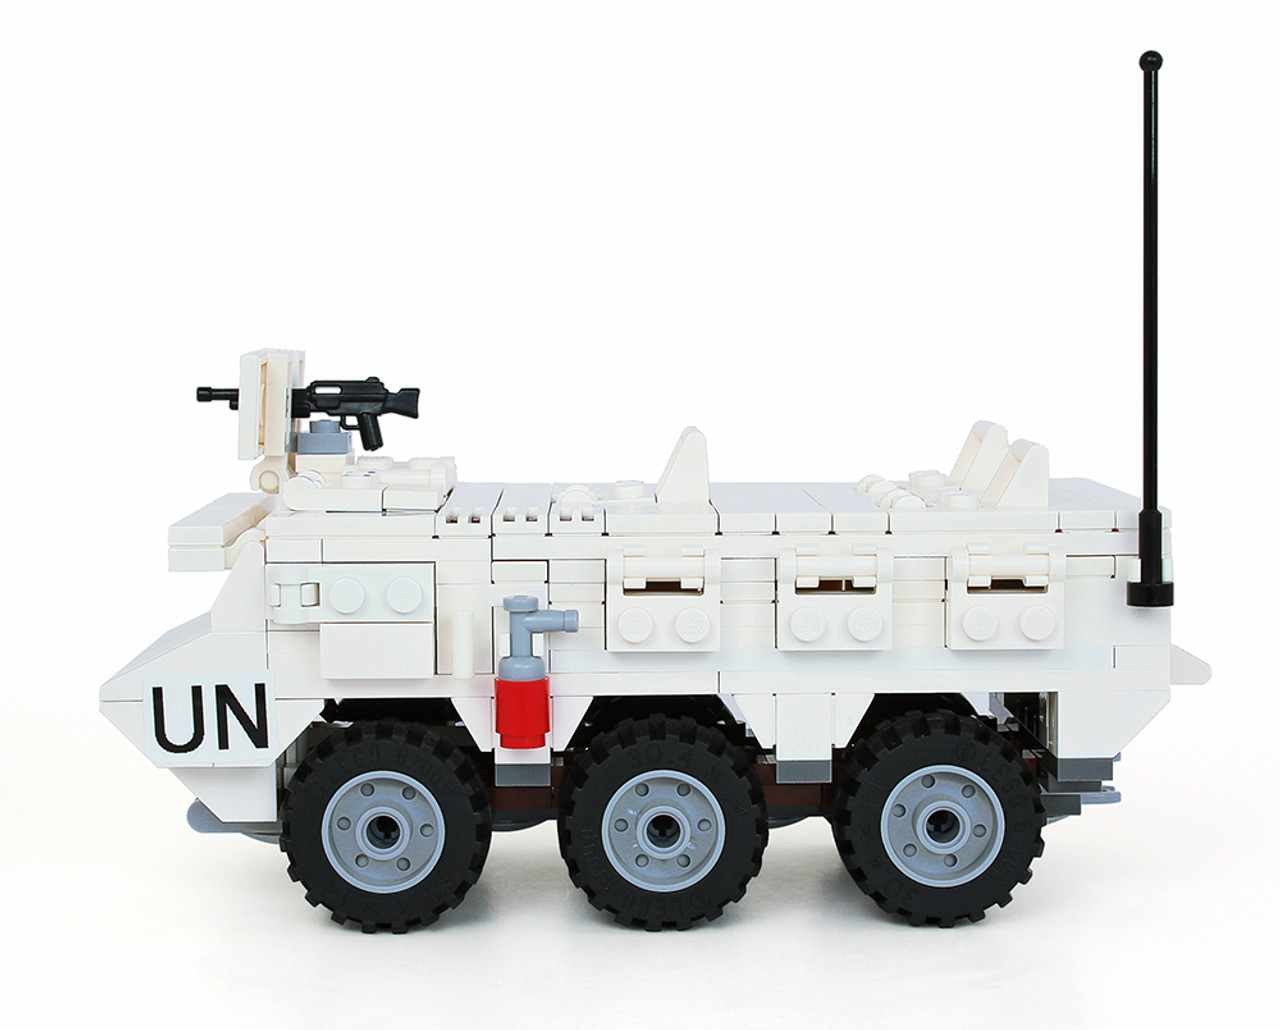 VAB 6x6 Armored Personnel Carrier - Team United Nations